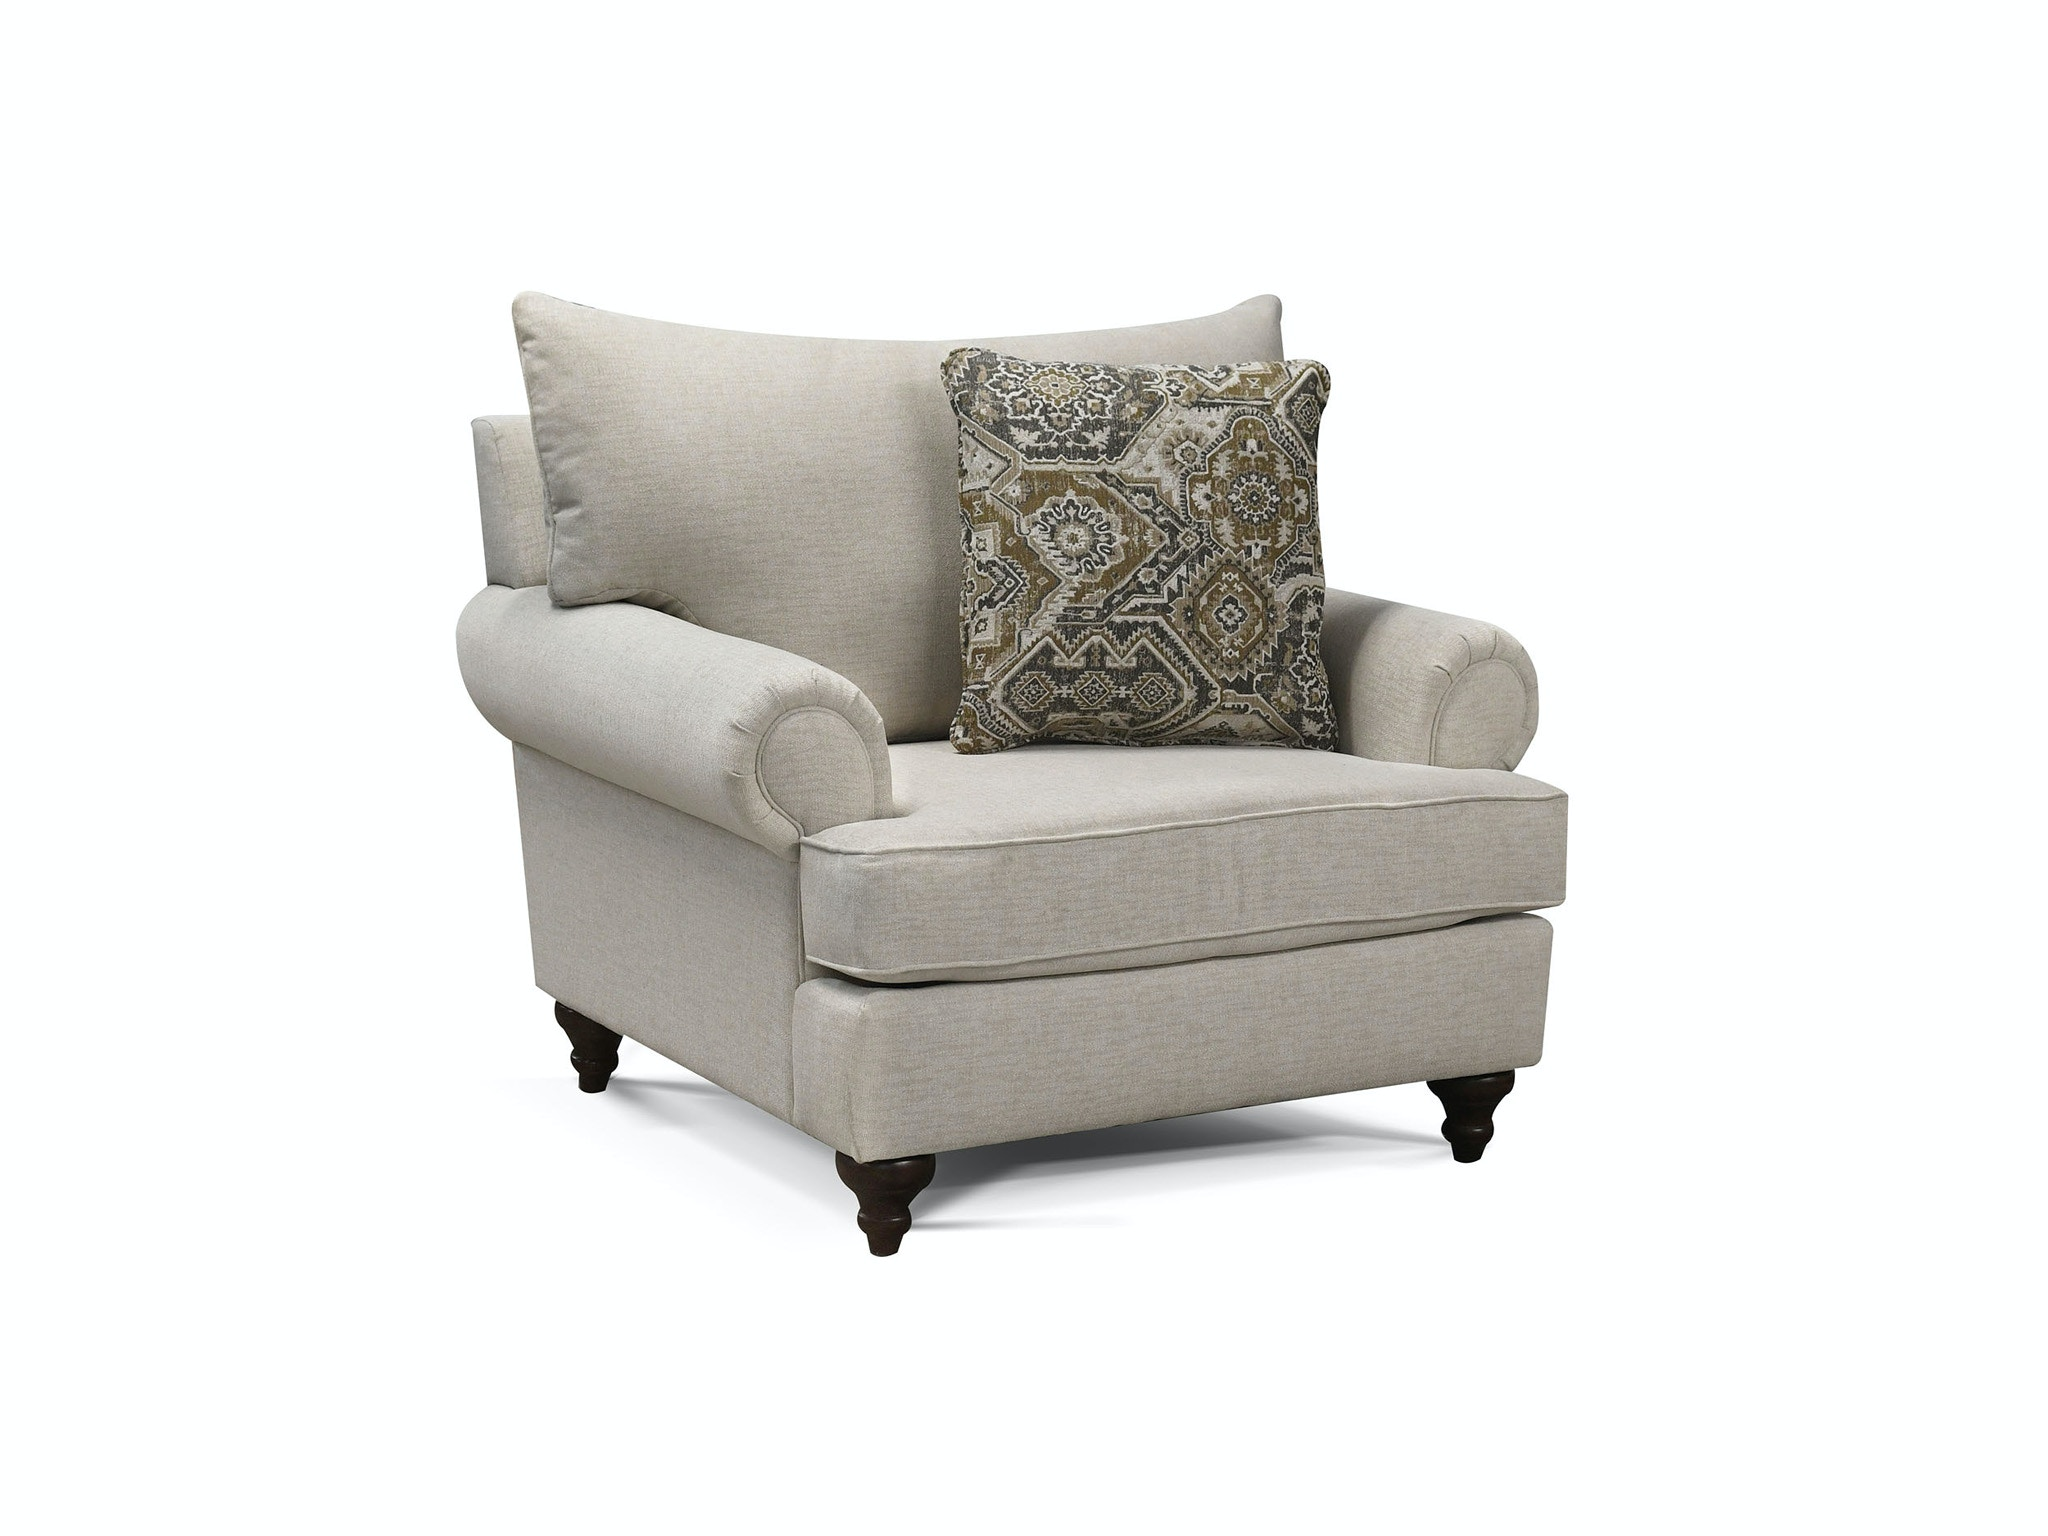 England Living Room Accent Chair, Benavento Spa 780734 At FurnitureLand